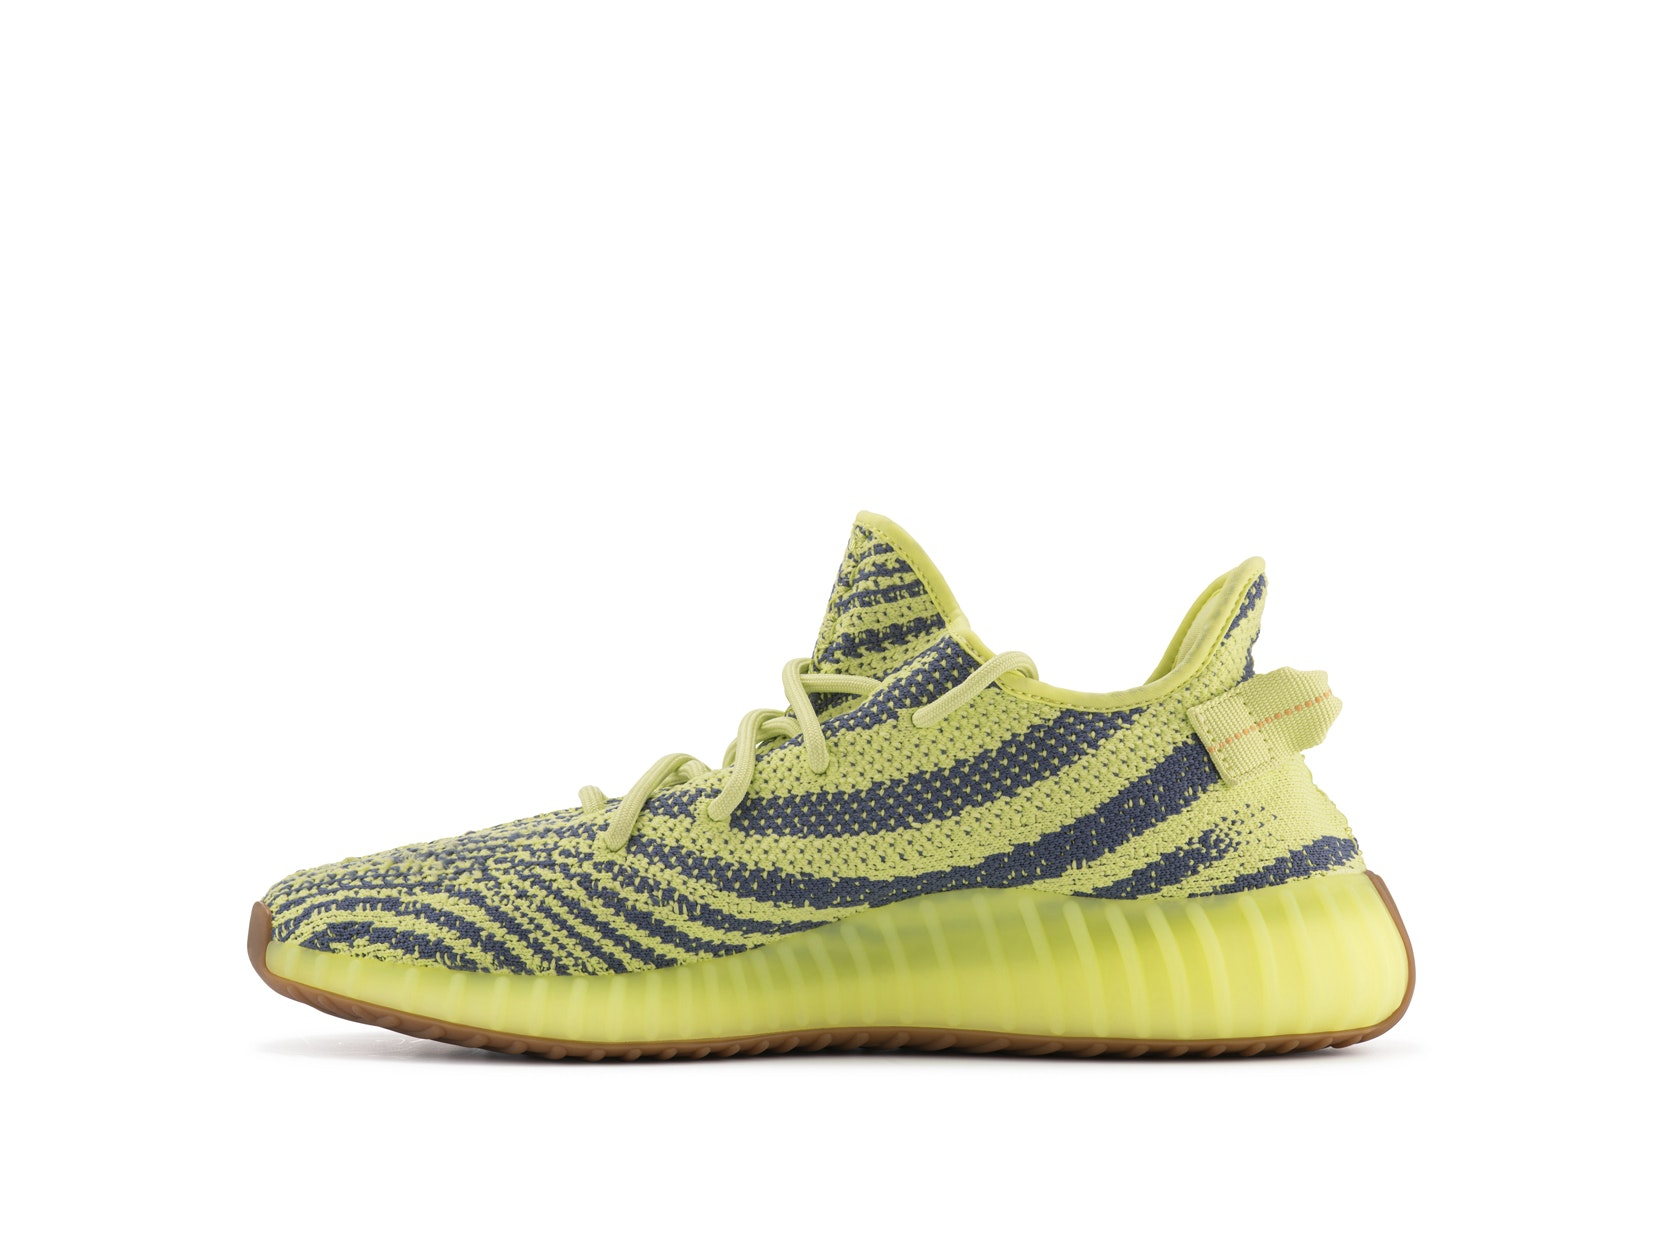 c37192d6a8a Yeezy Boost 350 V2 Semi Frozen Yellow. 100% AuthenticAvg Delivery Time  1-2  days. Adidas   B37572